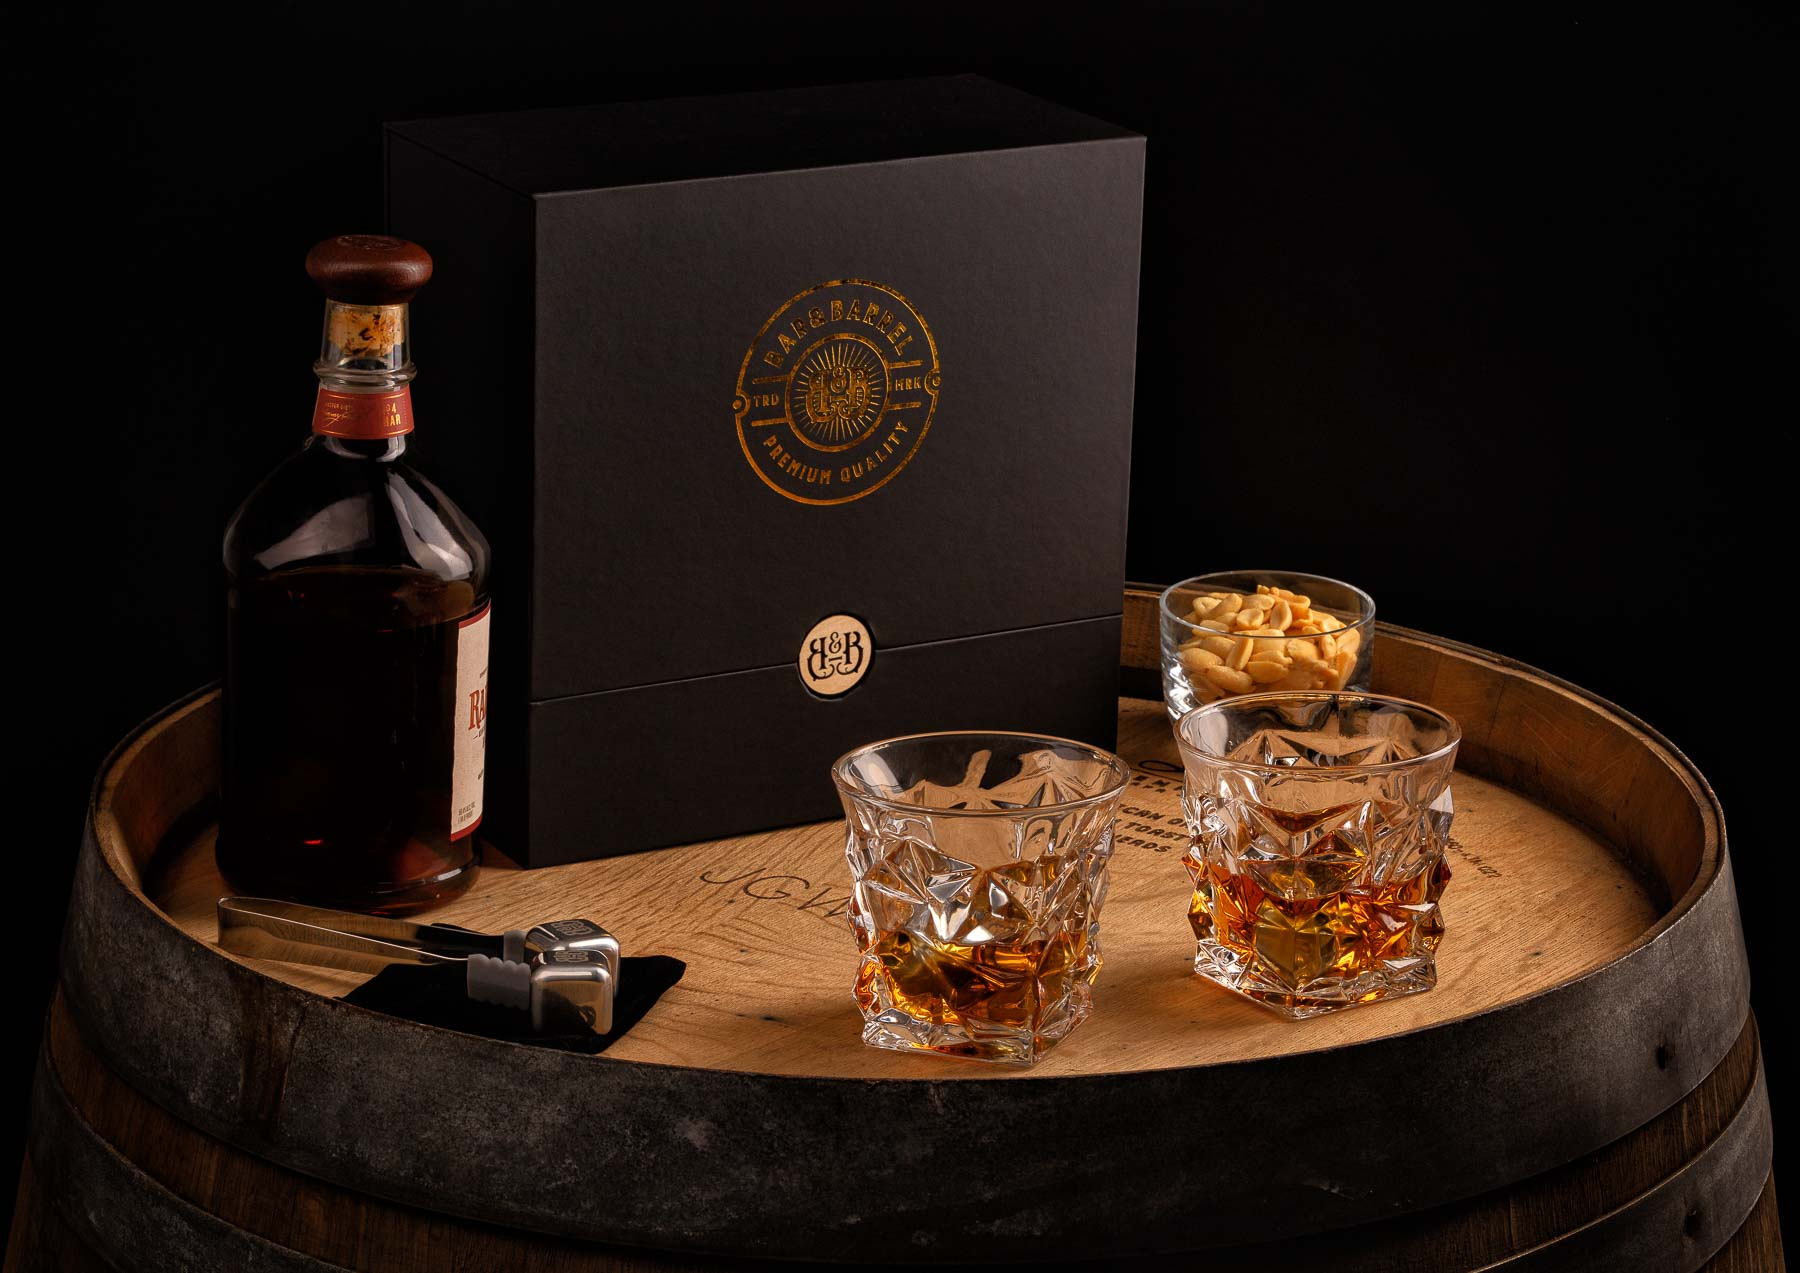 Bar&Barrel Whisky Cup Duos detailed over barrel - Lifestyle photo for advertising and amazon